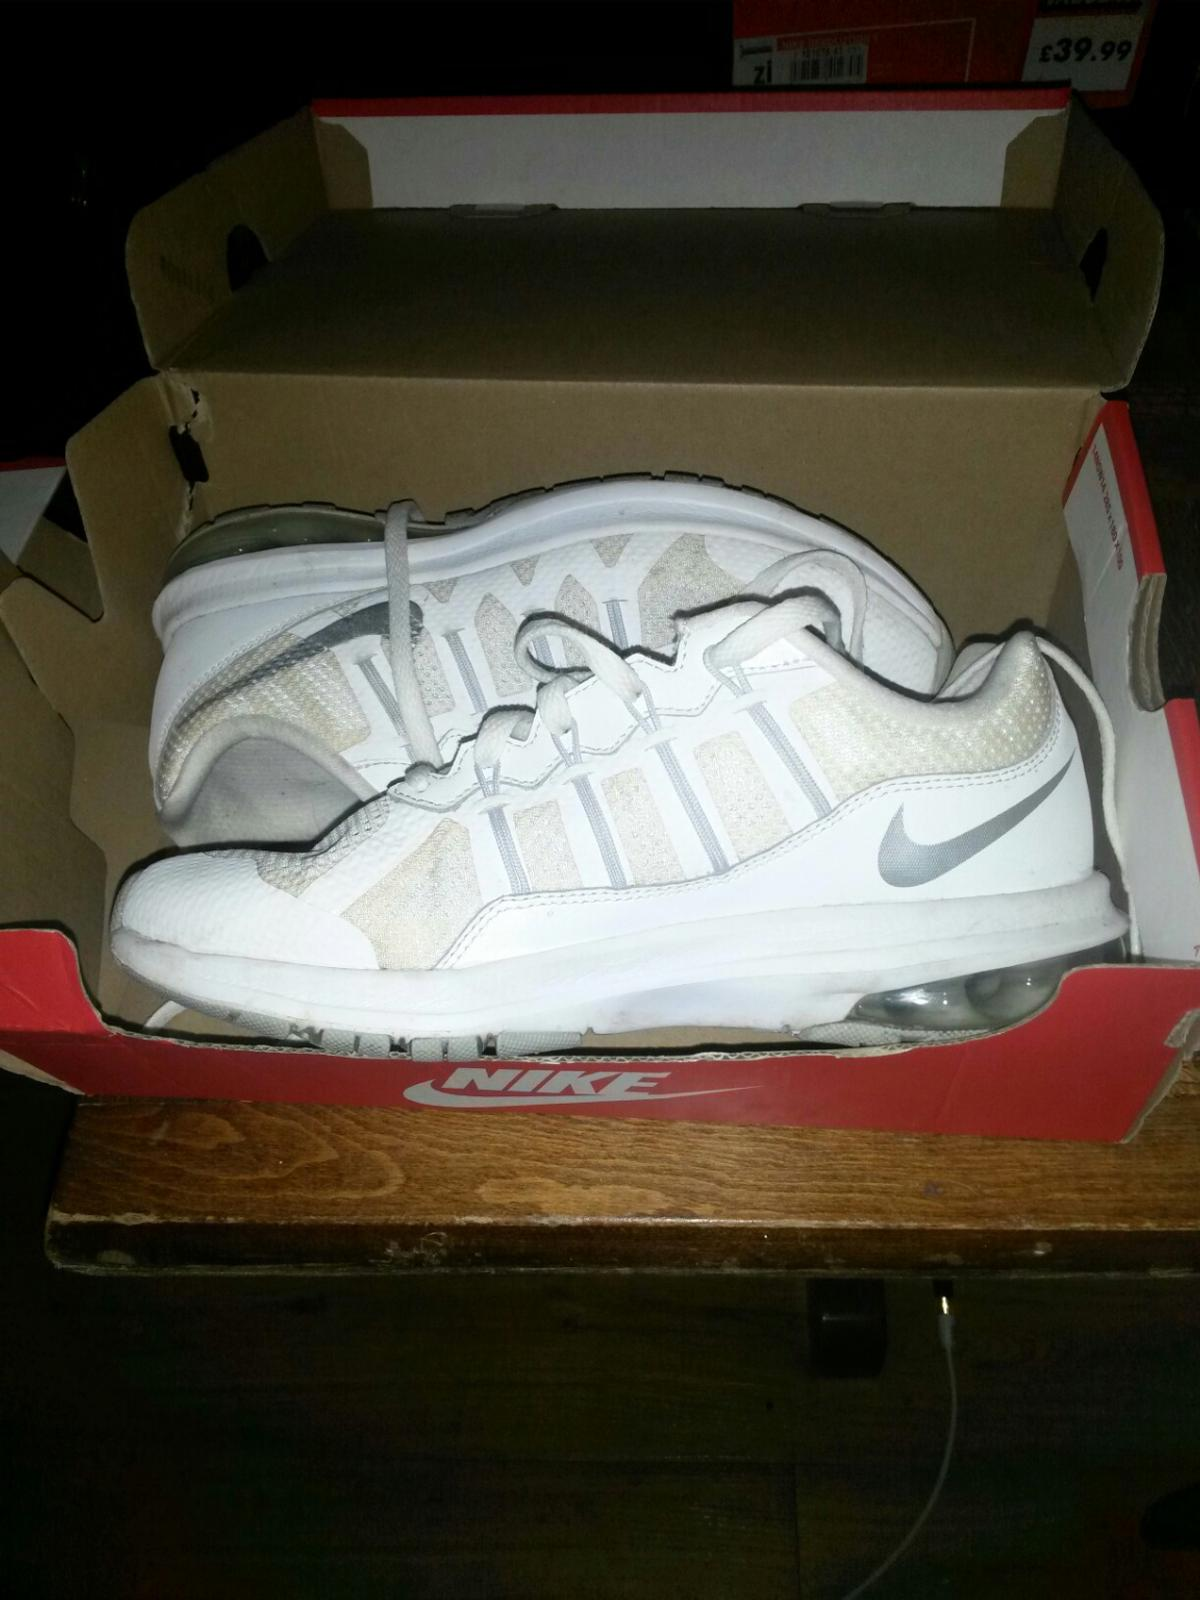 8c973889a5 Nike Air Max Dynasty Msl Women's Size UK4 in SE3 Greenwich for ...